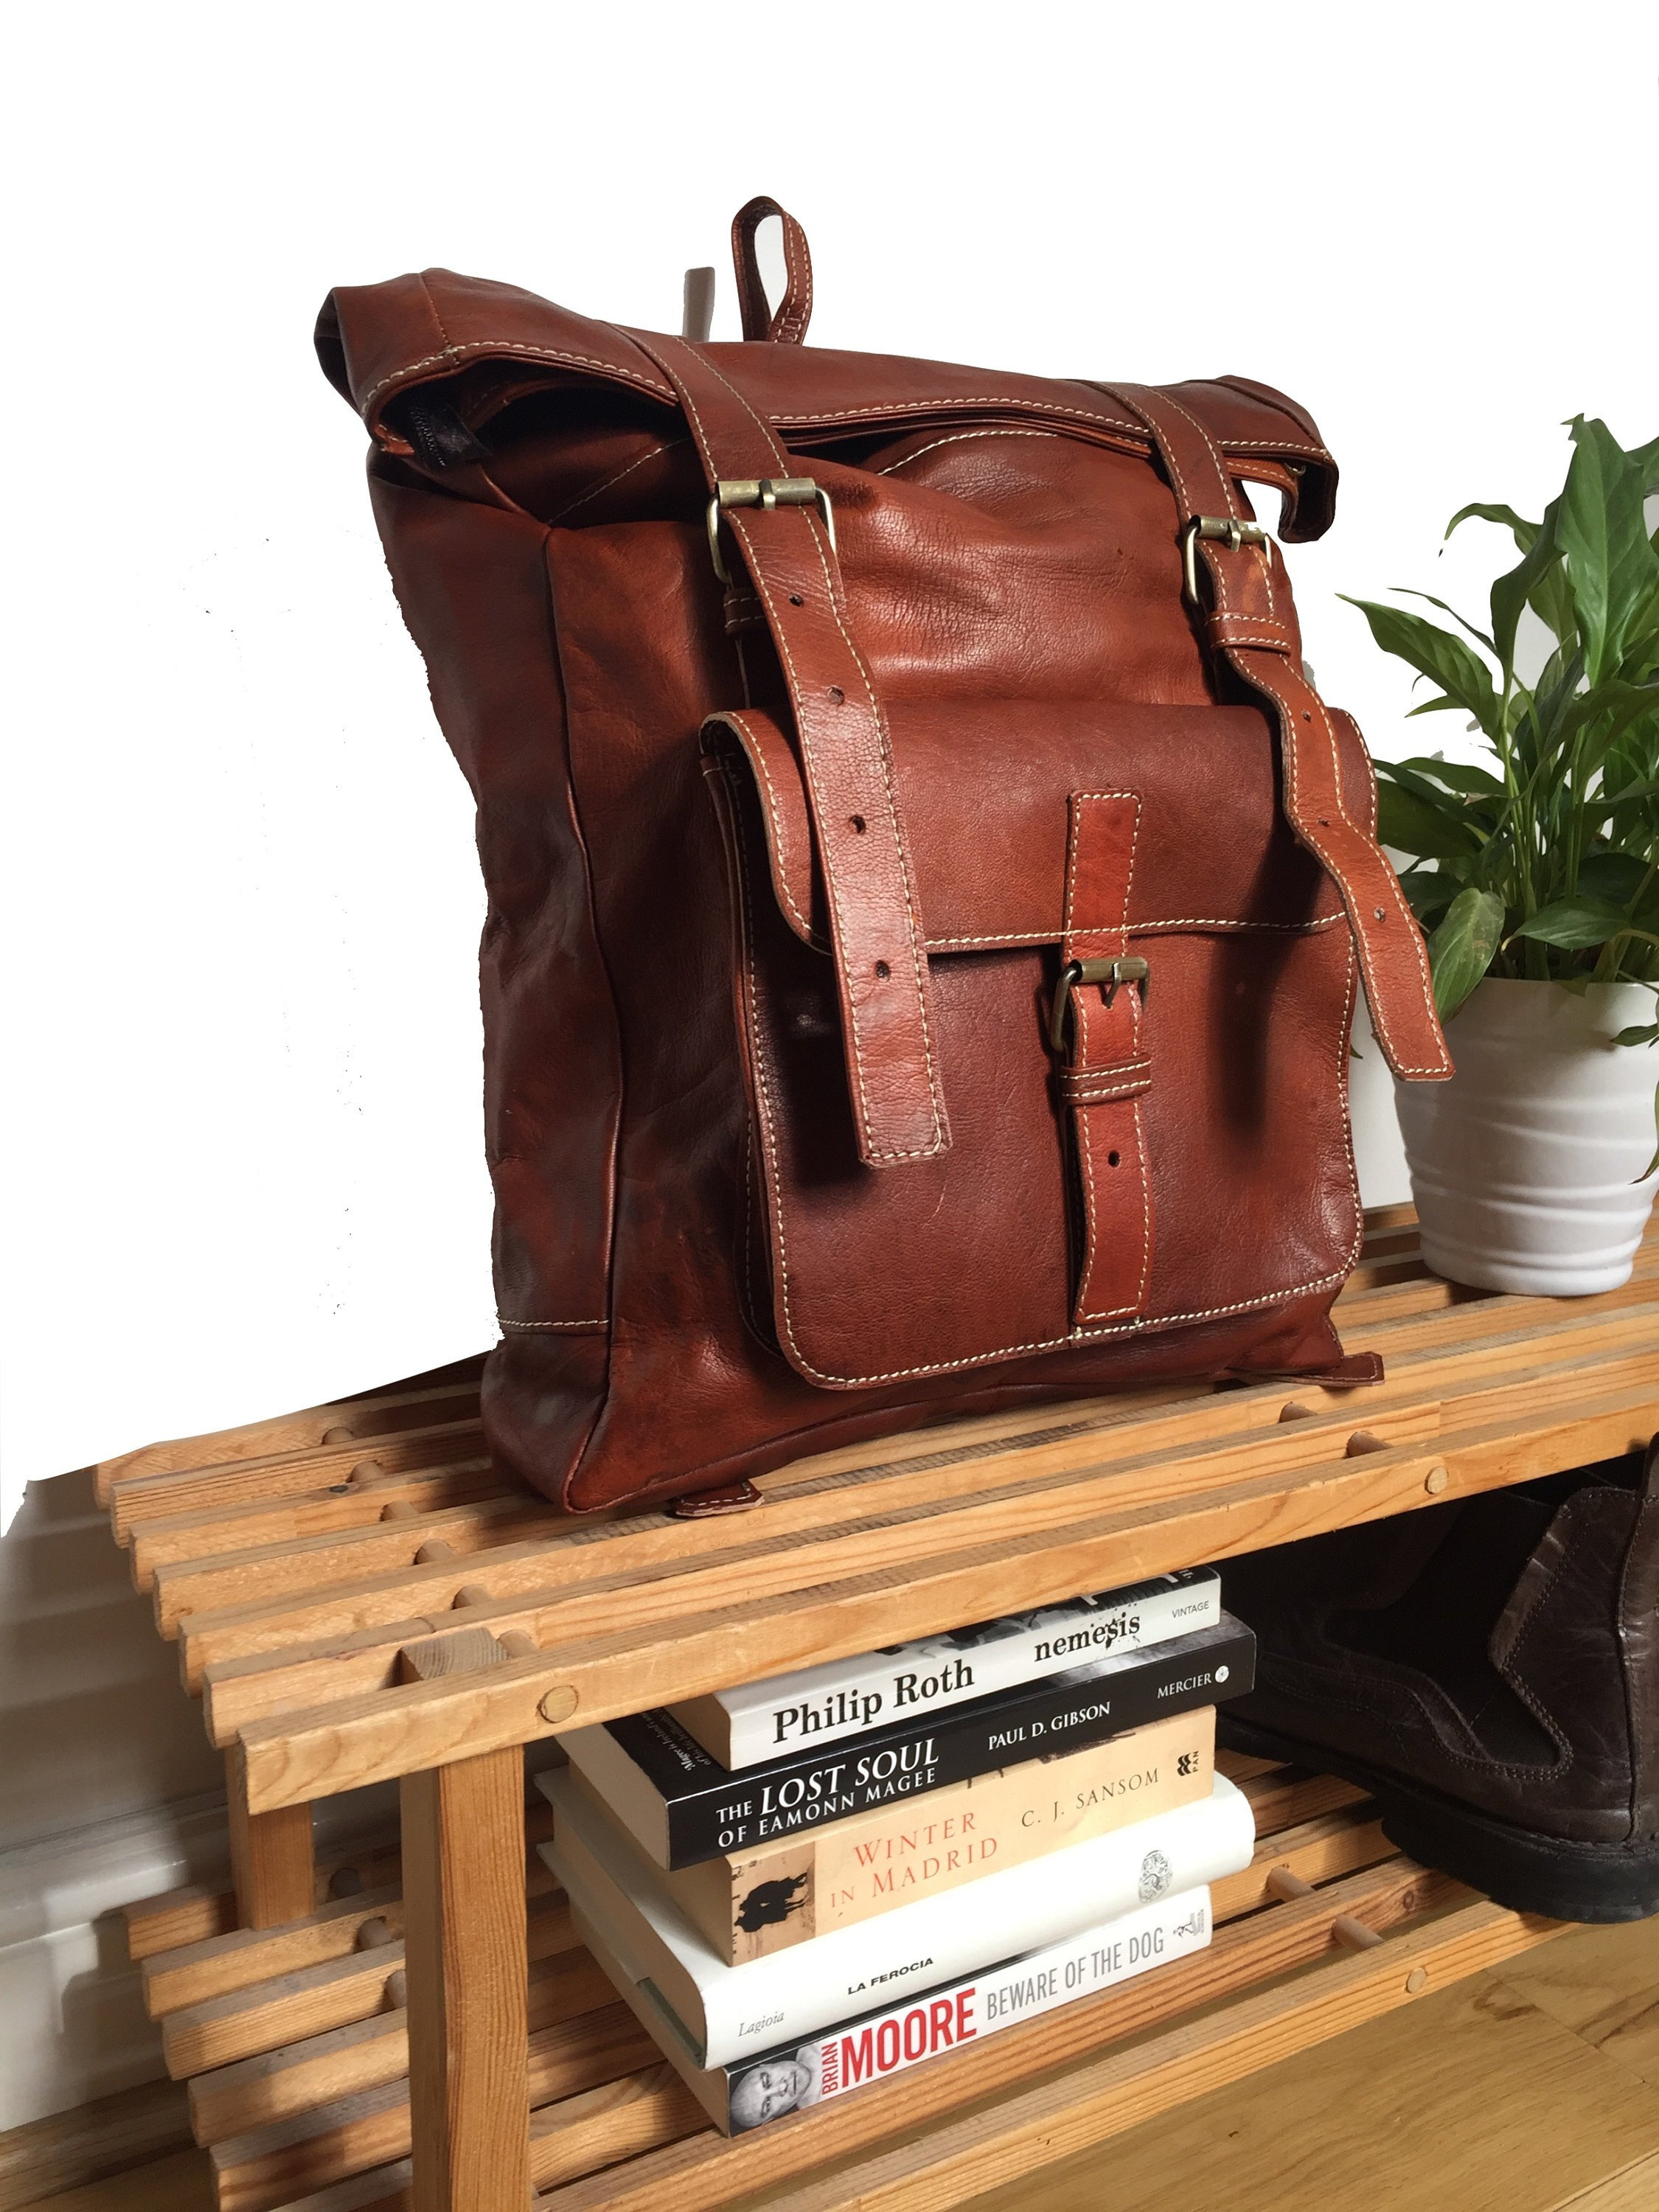 LEATHER BACKPACK, 19 x 13 inches, roll top leather rucksack, leder rucksack, rucksack leather, Hipster Backpack, backpack leather, man bag